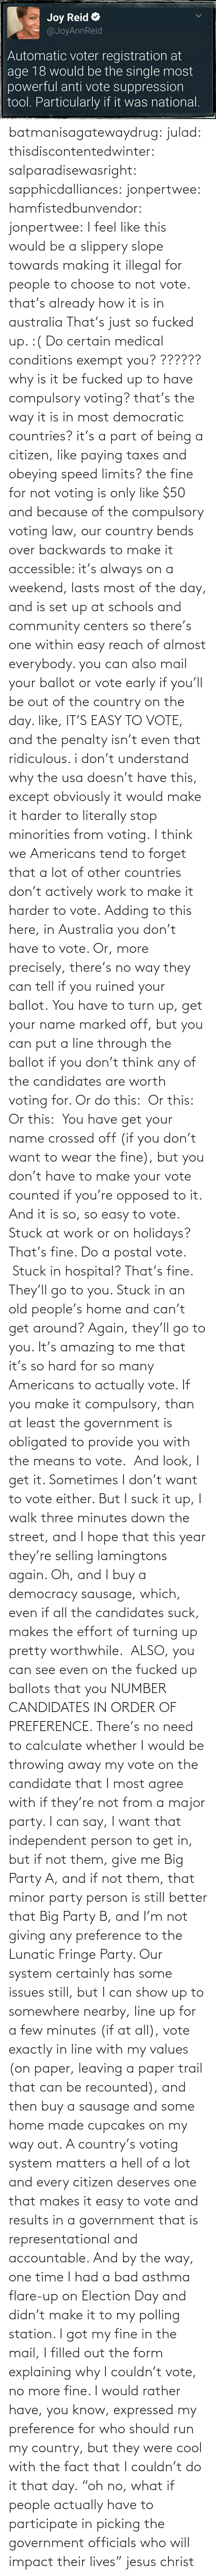 Deserves: batmanisagatewaydrug:  julad:  thisdiscontentedwinter:  salparadisewasright:  sapphicdalliances:  jonpertwee:  hamfistedbunvendor:   jonpertwee: I feel like this would be a slippery slope towards making it illegal for people to choose to not vote. that's already how it is in australia   That's just so fucked up. :( Do certain medical conditions exempt you?  ?????? why is it be fucked up to have compulsory voting? that's the way it is in most democratic countries? it's a part of being a citizen, like paying taxes and obeying speed limits? the fine for not voting is only like $50 and because of the compulsory voting law, our country bends over backwards to make it accessible: it's always on a weekend, lasts most of the day, and is set up at schools and community centers so there's one within easy reach of almost everybody. you can also mail your ballot or vote early if you'll be out of the country on the day. like, IT'S EASY TO VOTE, and the penalty isn't even that ridiculous. i don't understand why the usa doesn't have this, except obviously it would make it harder to literally stop minorities from voting.  I think we Americans tend to forget that a lot of other countries don't actively work to make it harder to vote.  Adding to this here, in Australia you don't have to vote. Or, more precisely, there's no way they can tell if you ruined your ballot.You have to turn up, get your name marked off, but you can put a line through the ballot if you don't think any of the candidates are worth voting for. Or do this: Or this:  Or this: You have get your name crossed off (if you don't want to wear the fine), but you don't have to make your vote counted if you're opposed to it. And it is so, so easy to vote. Stuck at work or on holidays? That's fine. Do a postal vote. Stuck in hospital? That's fine. They'll go to you. Stuck in an old people's home and can't get around? Again, they'll go to you. It's amazing to me that it's so hard for so many Americans to actually v